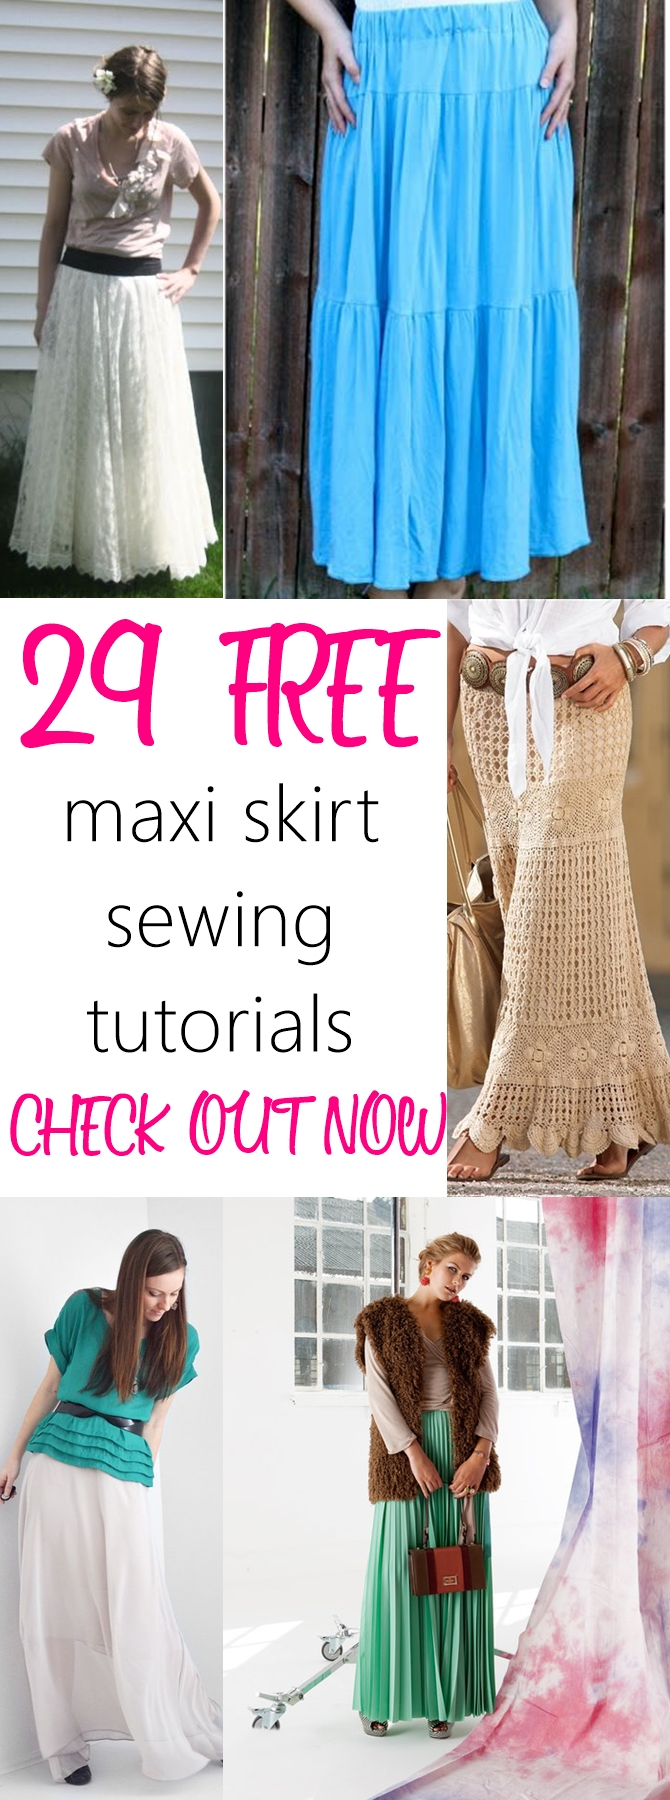 long skirt designs | how to make a skirt | maxi dress patterns | skirt patterns free | how to make a maxi skirt